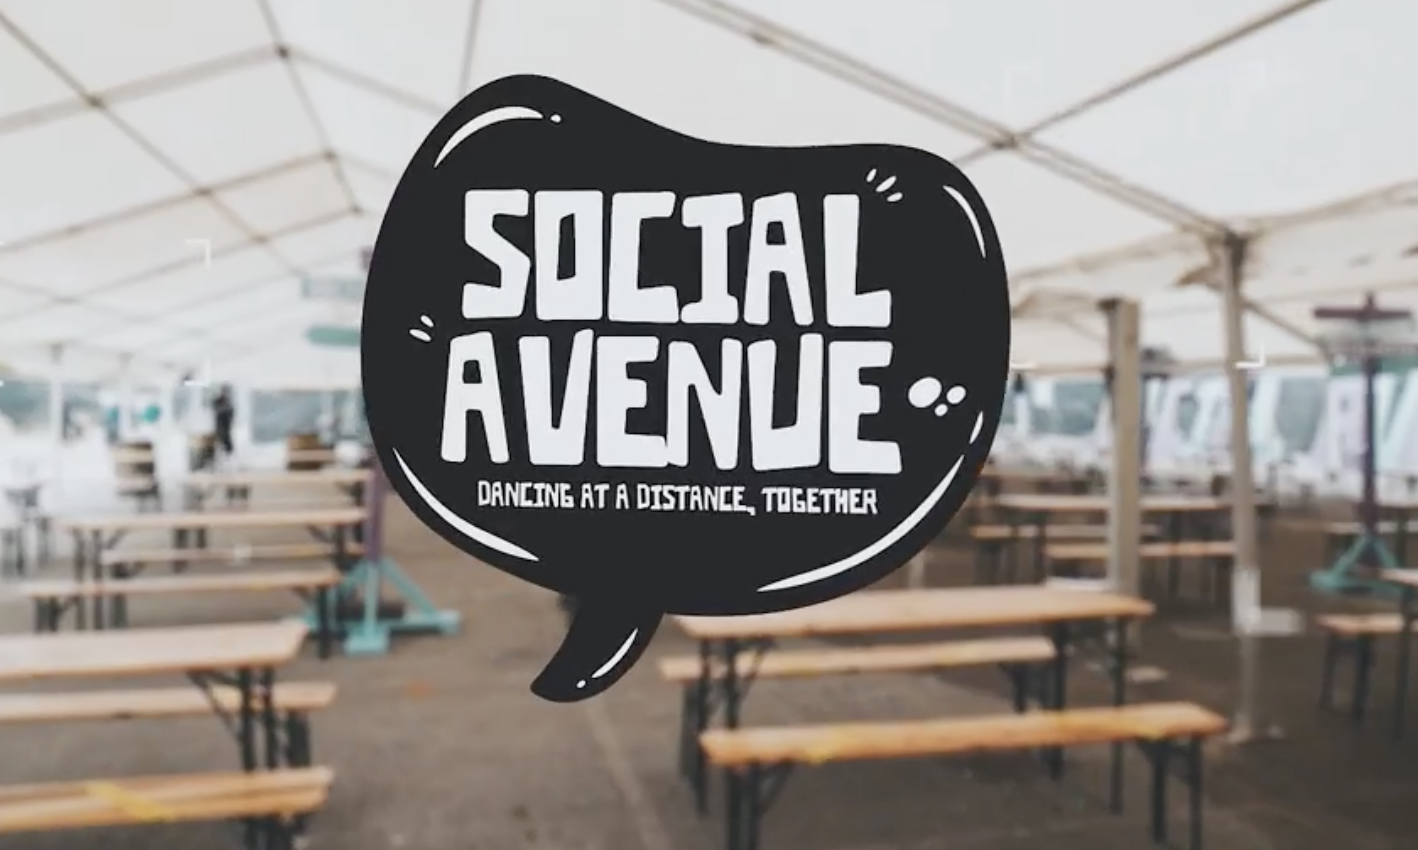 Social Avenue adds more dates to their in-demand 'dance at a distance' party series, The Manc